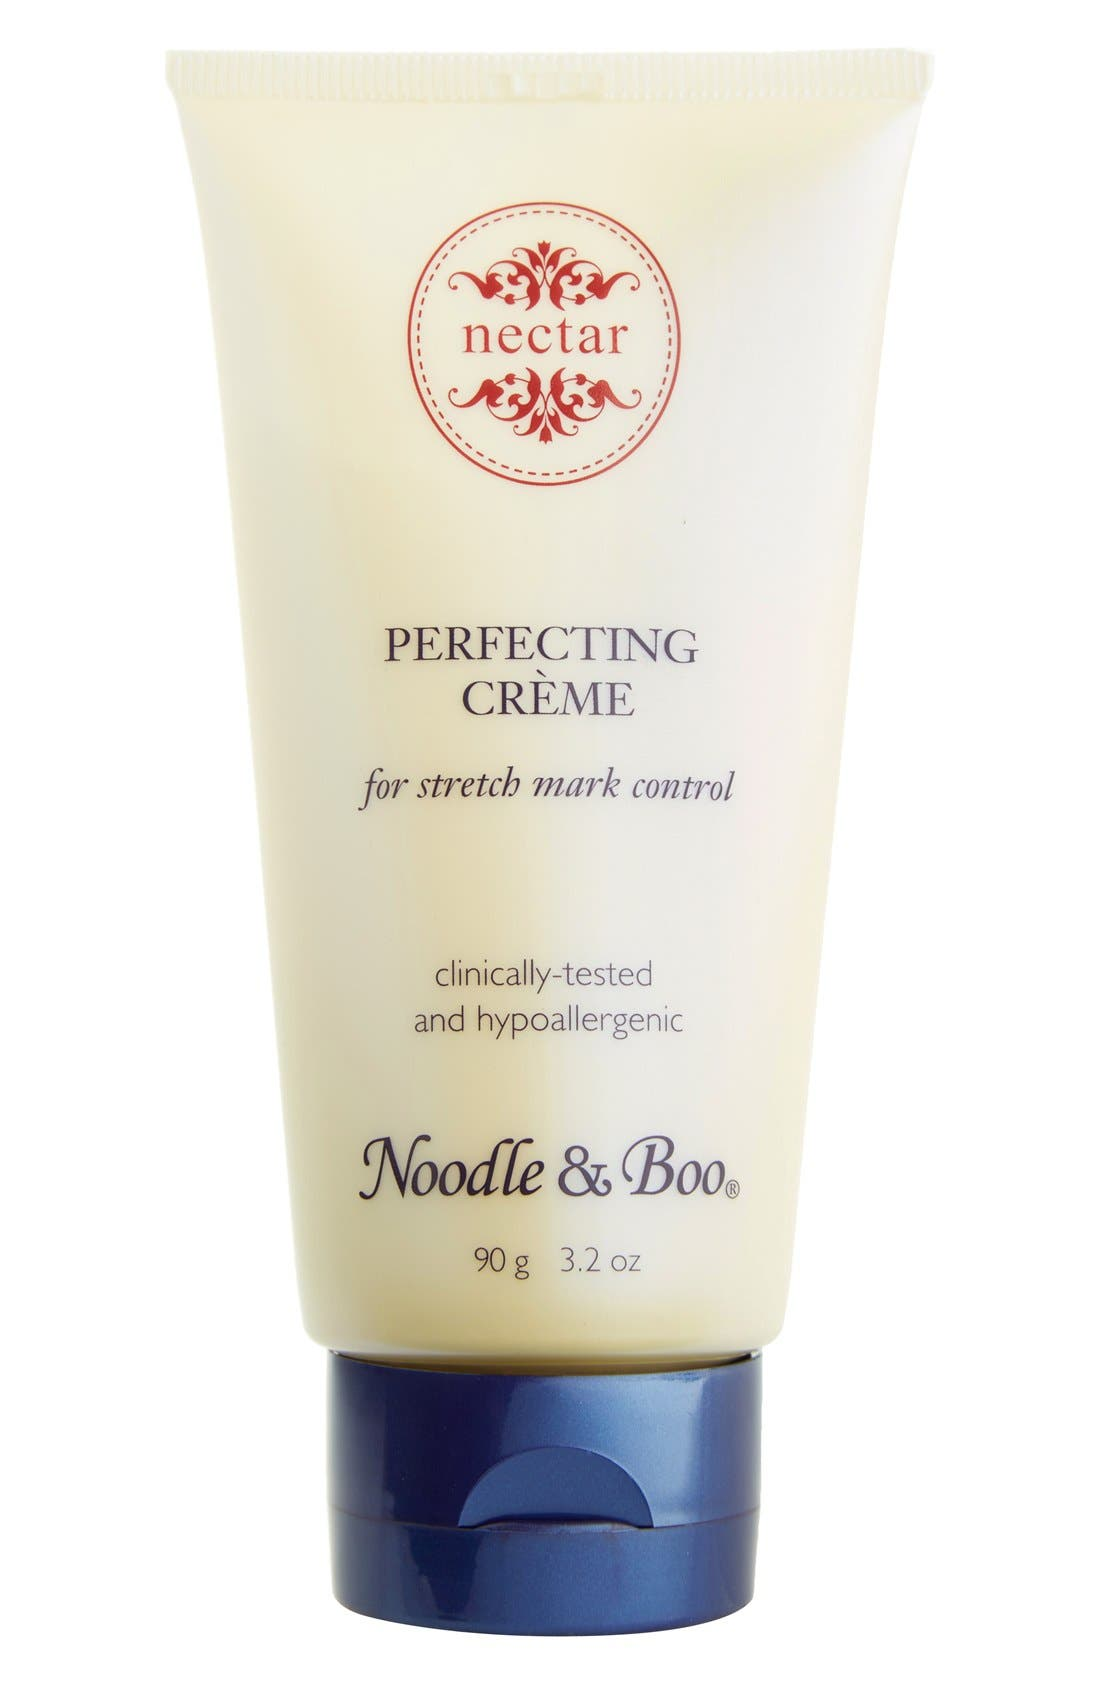 Noodle & Boo 'nectar' Perfecting Crème